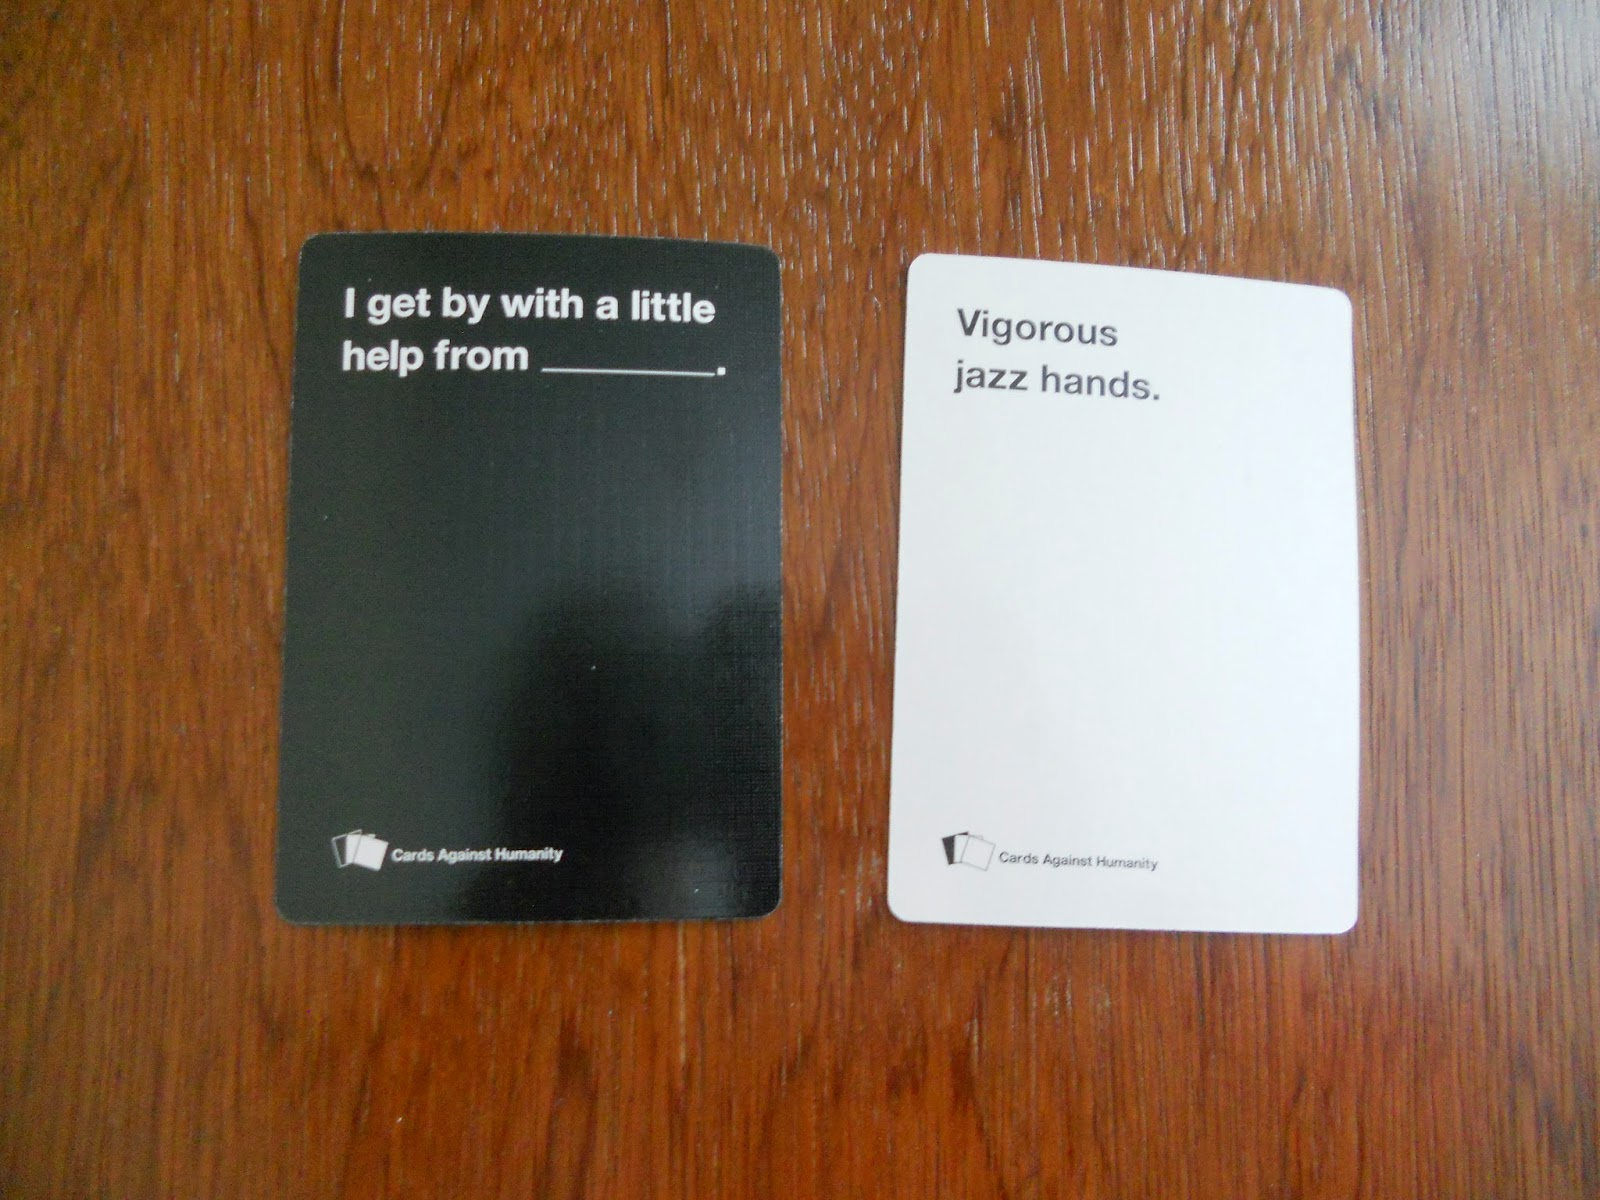 Image of: Answers My Experience With The Normal Way Of Playing Cah Is Somewhat Limited Ive Only Played It Once But My Friends And Went Through The Entire Box And Had Stay Gold Cards Against Humanity With Twist